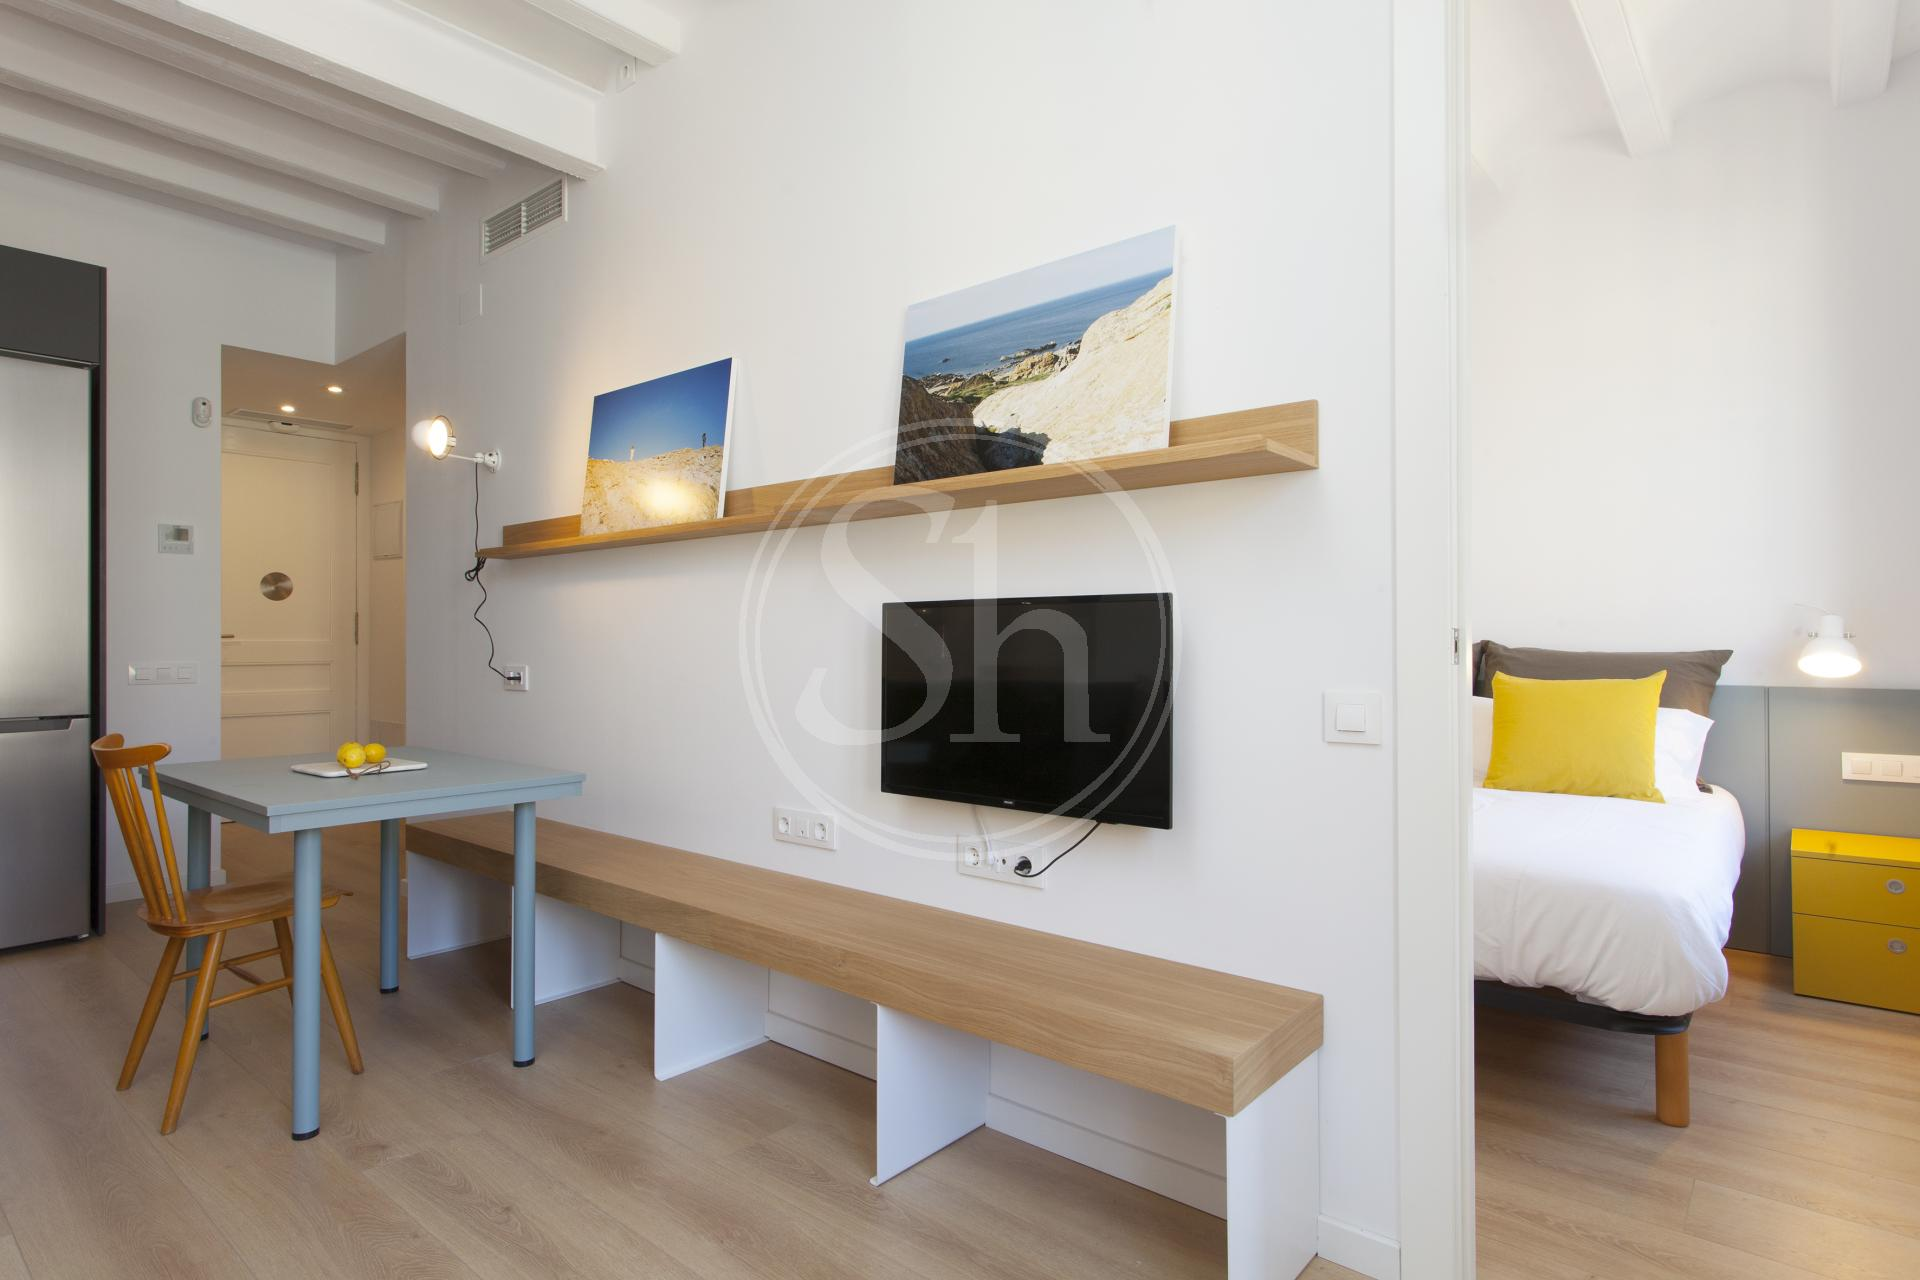 apartment for rent barcelona sants montju 239 c roser 11144 | b8aa2dbe820bd1097aac56afc84fae7d